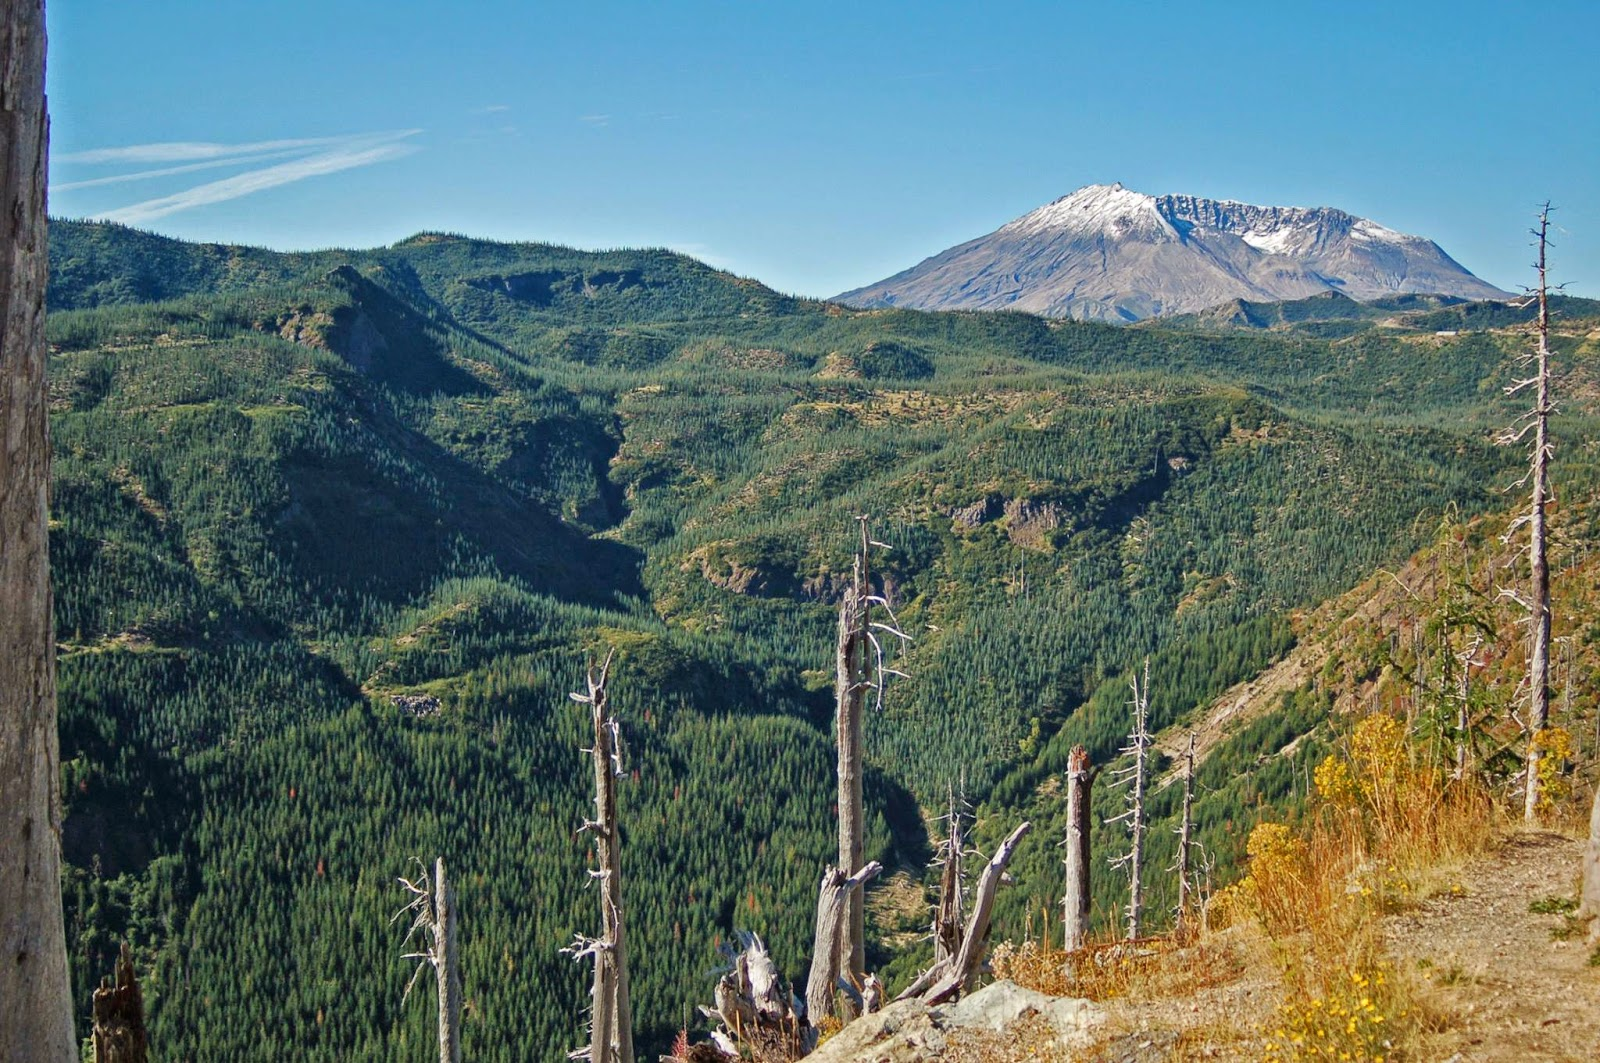 Mount Saint Helens, September 2009